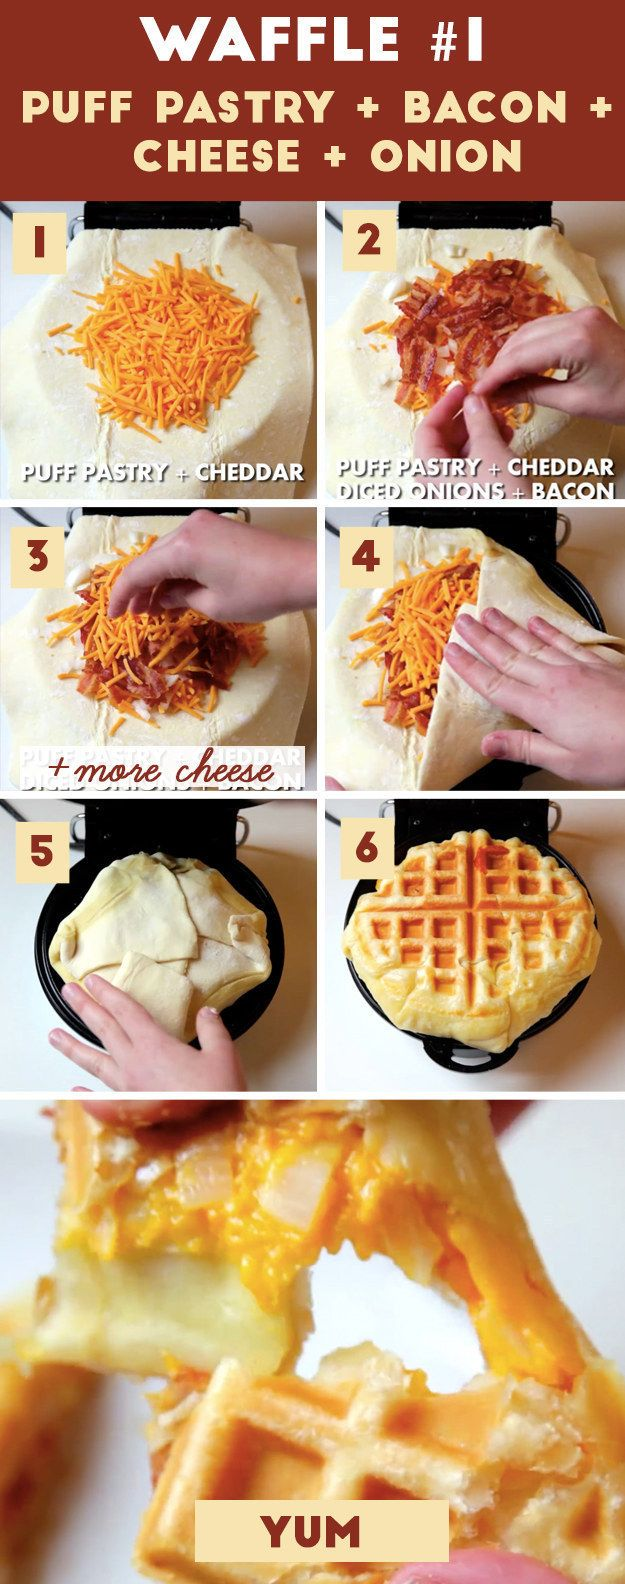 Puff Pastry + Bacon + Cheese Waffle